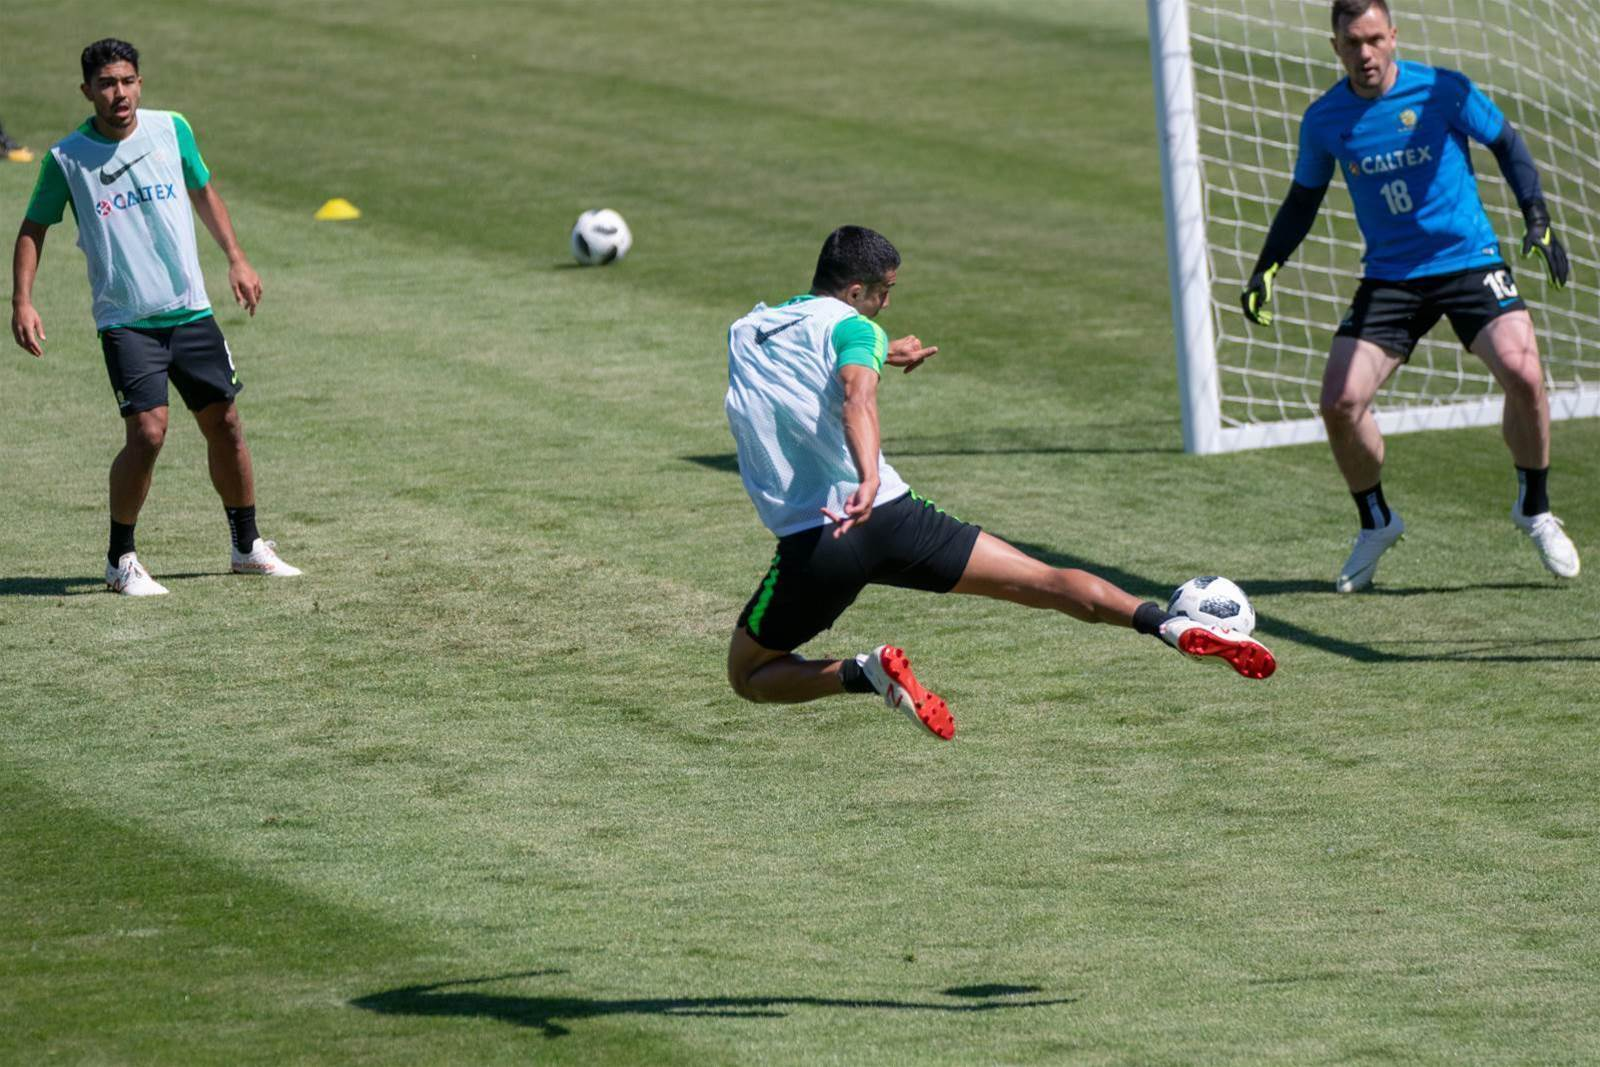 Pic special: The Socceroos battling for a start